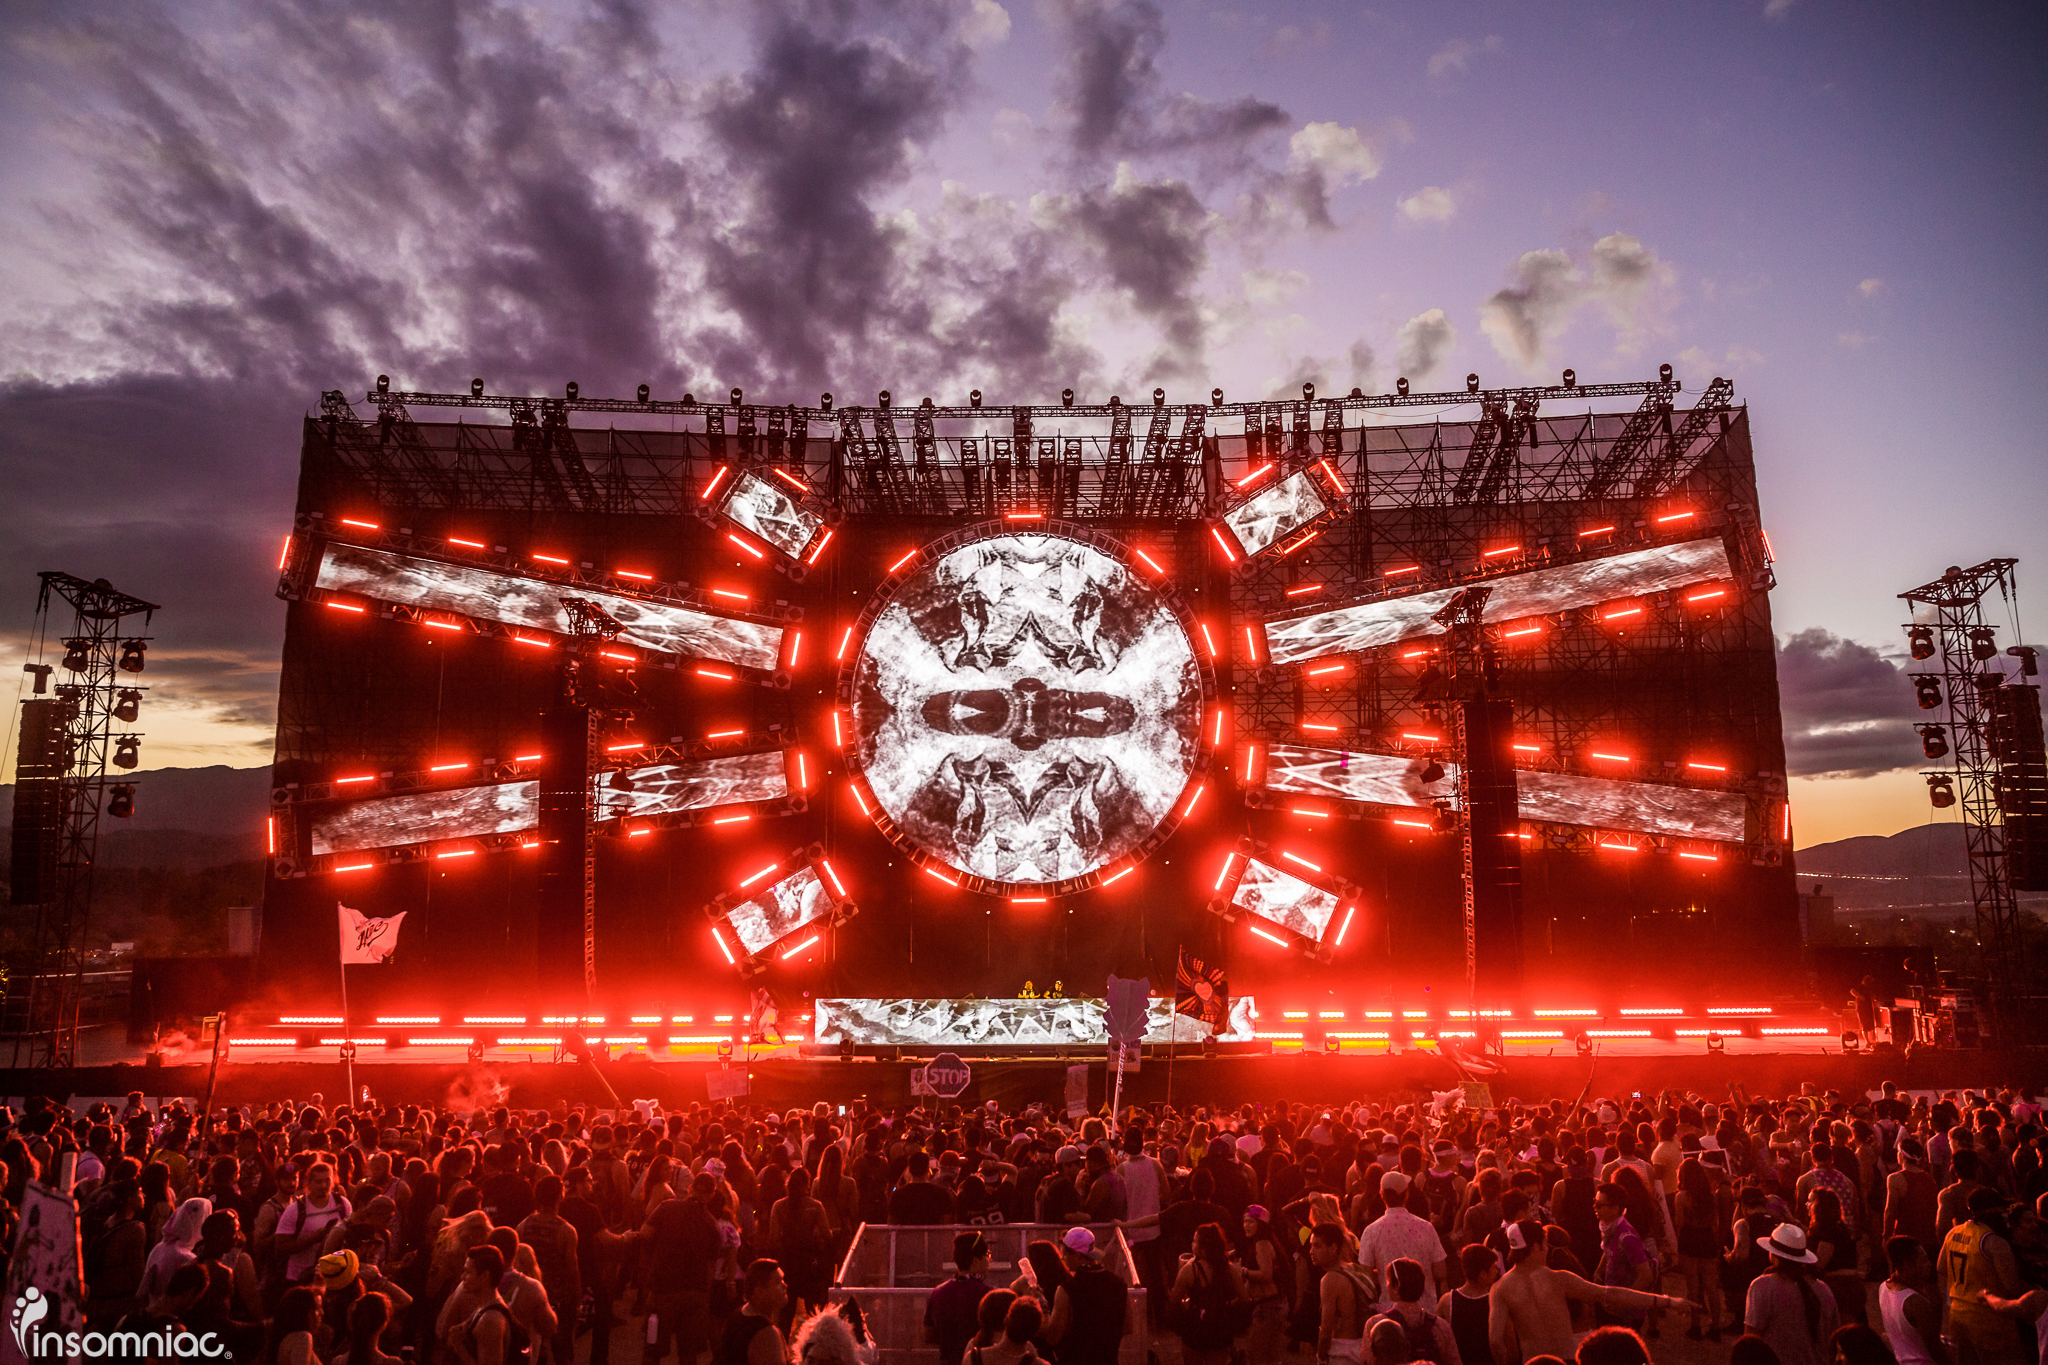 nocturnal_2015_iwally_alivecoverage-22.jpg